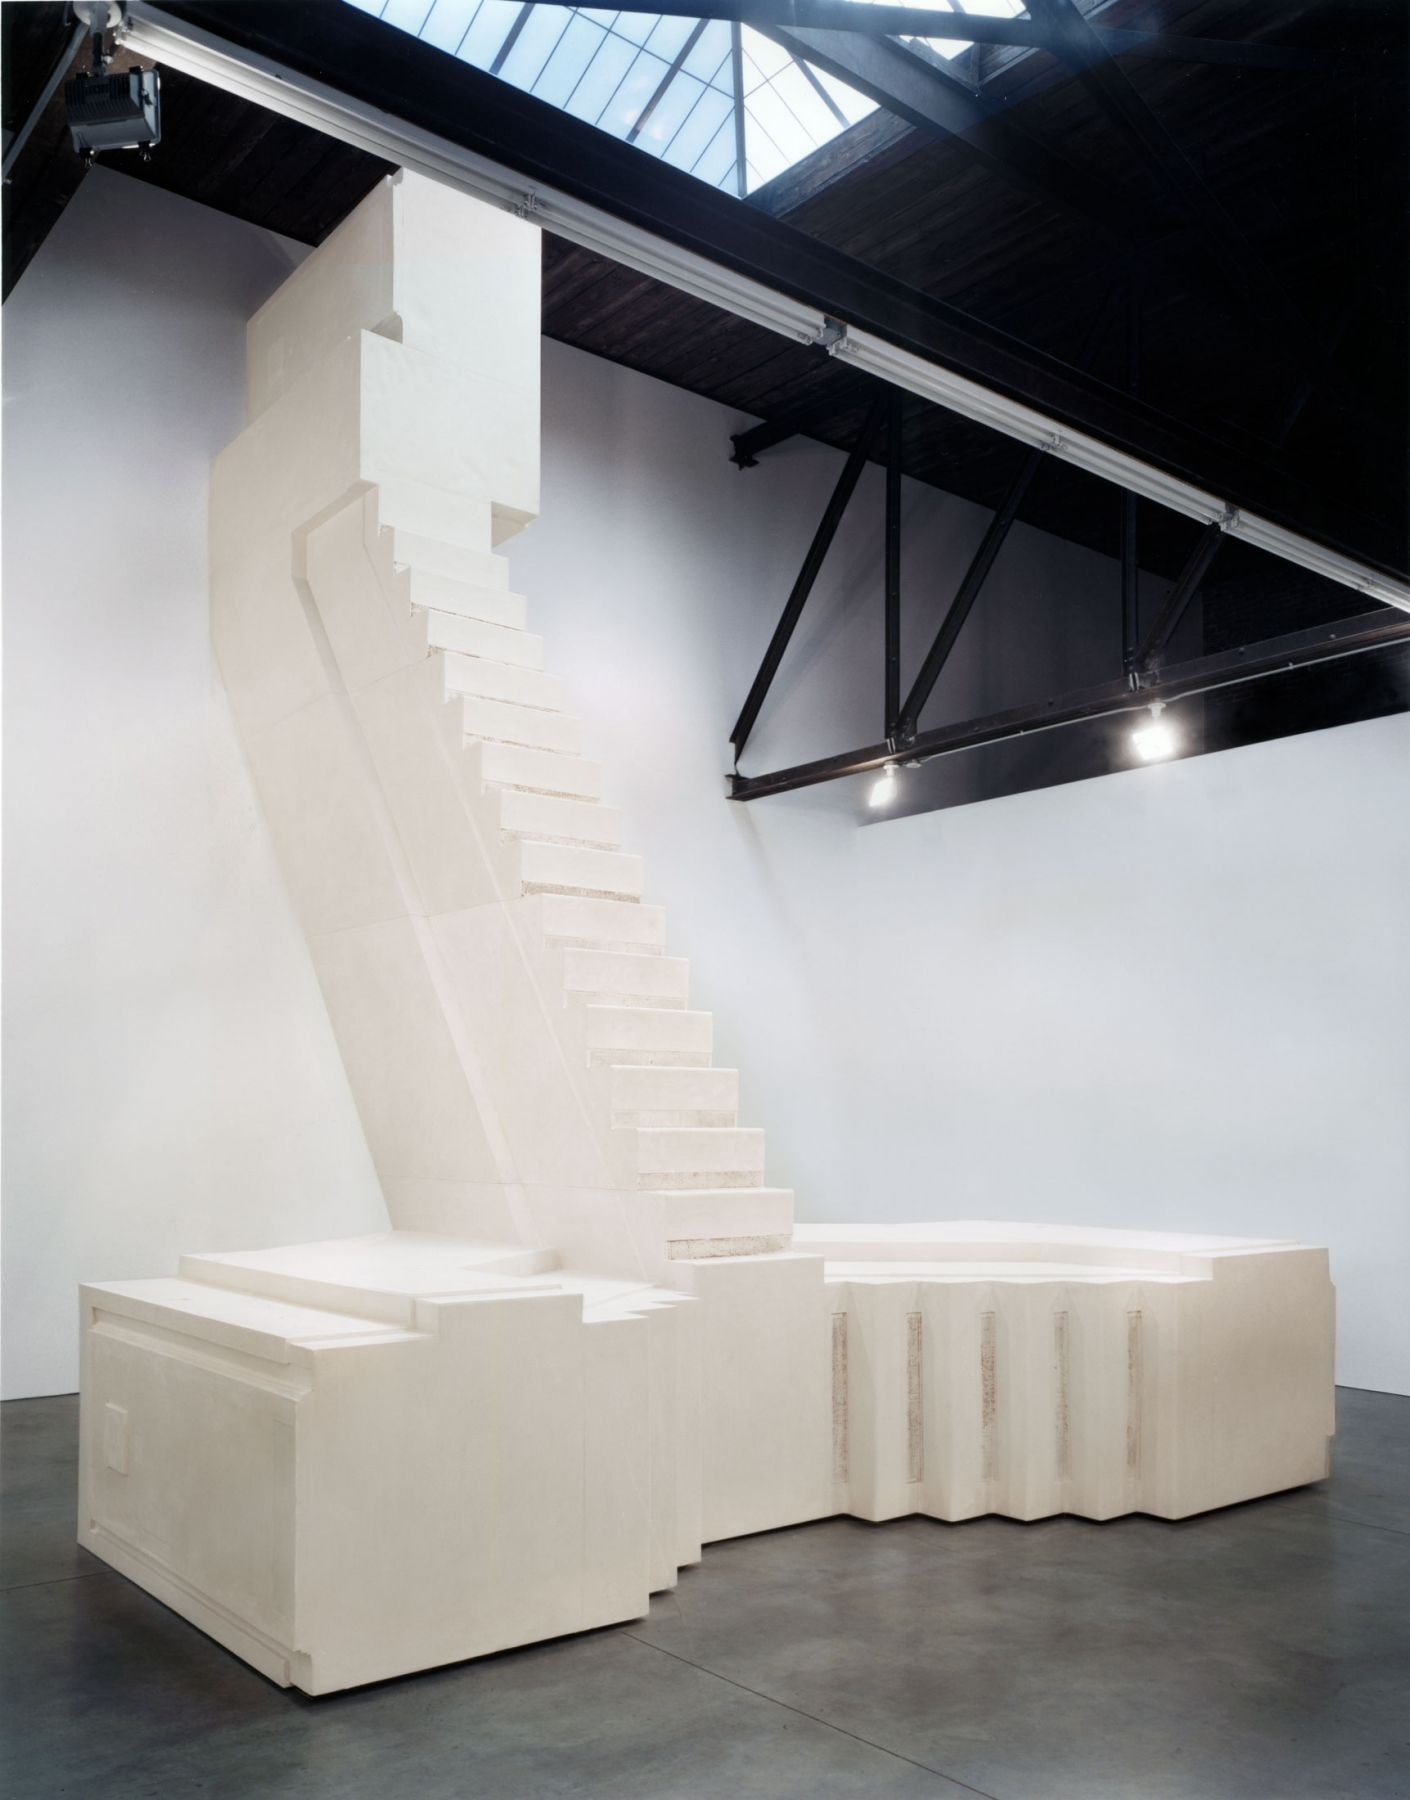 Rachel Whiteread, Installation view